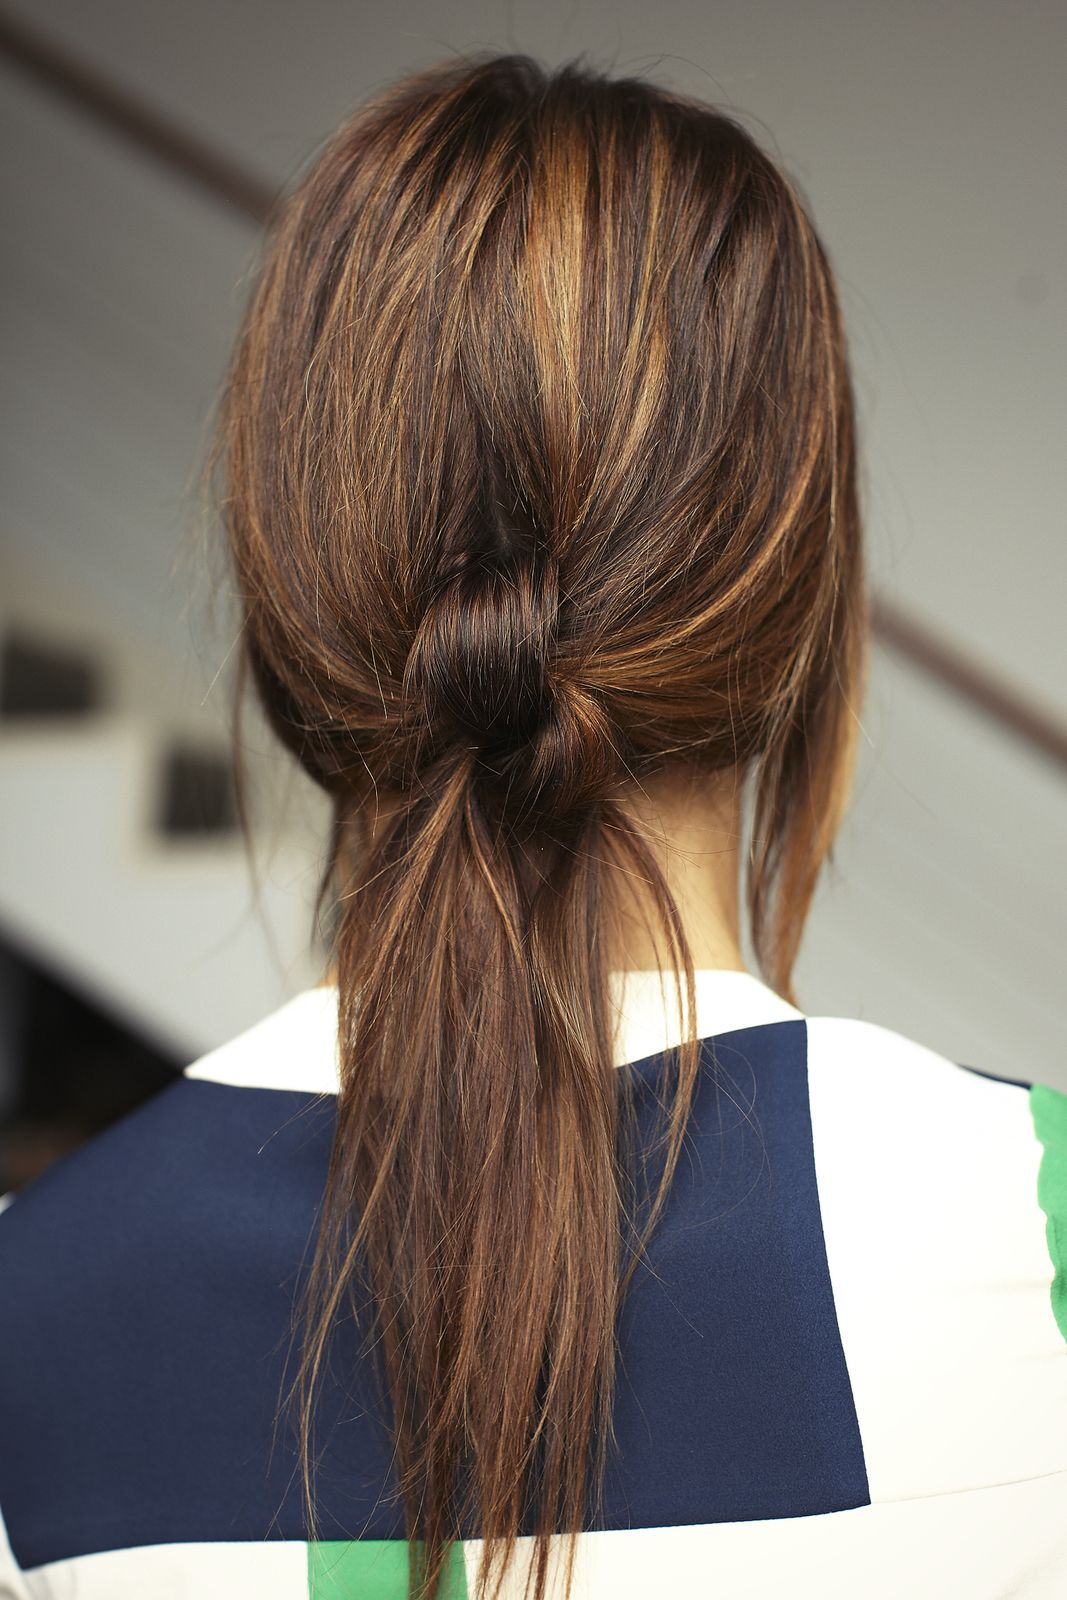 hair knots how-to guide for styling summer 2013 | hair knot